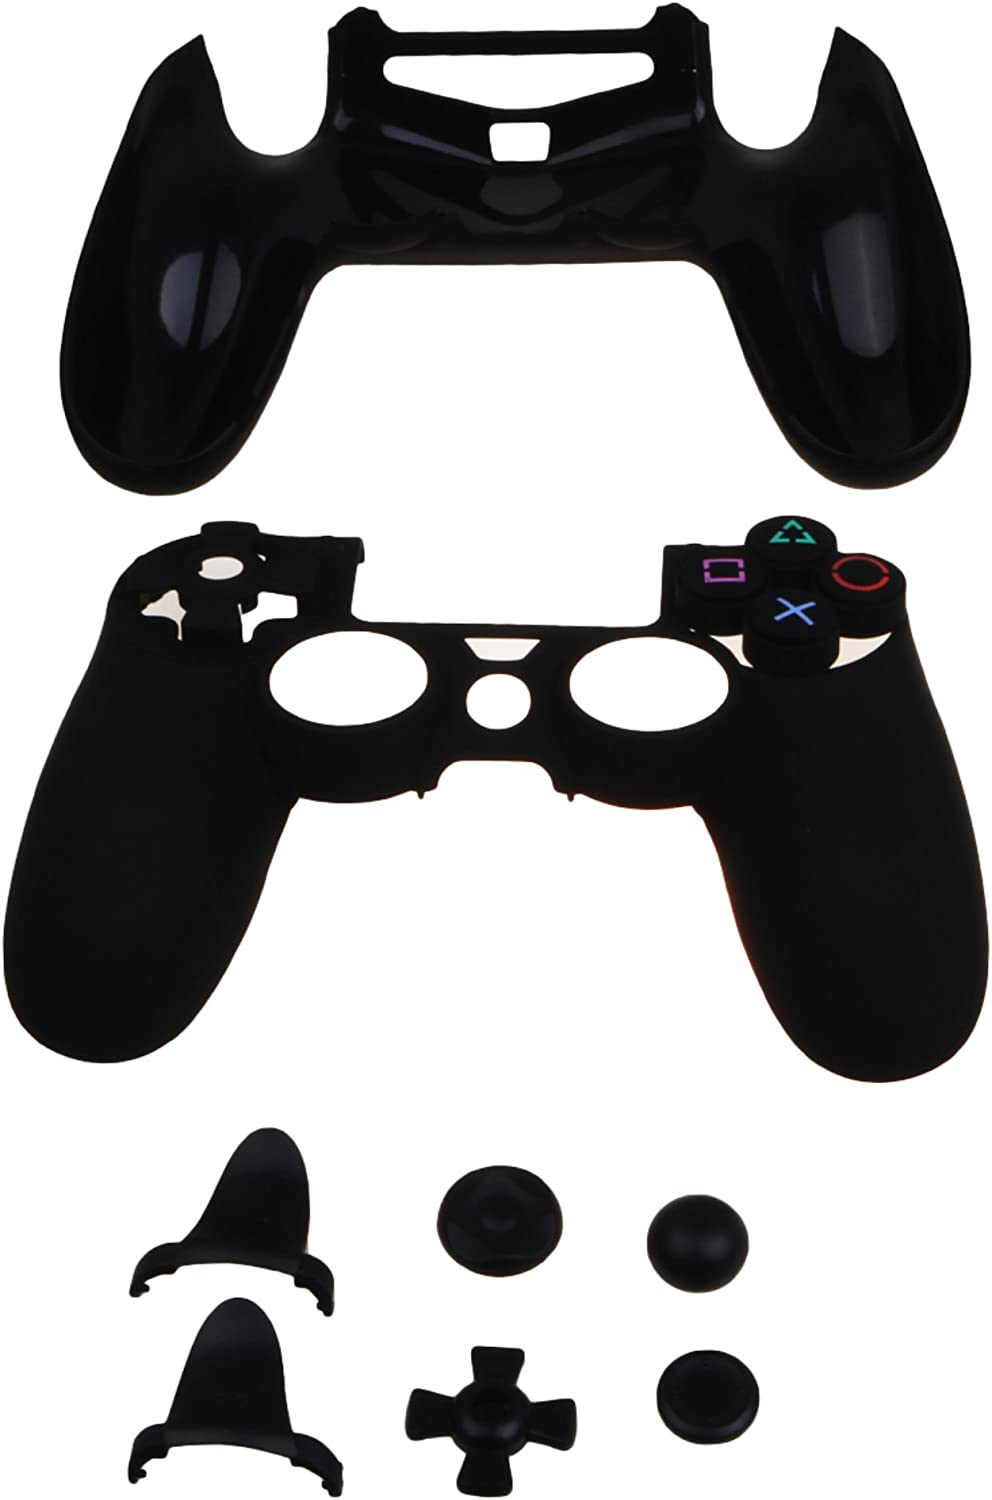 MXRC ULTRA ARMOR GEAR FPS Case Cover Shell for PS4 Controller Black